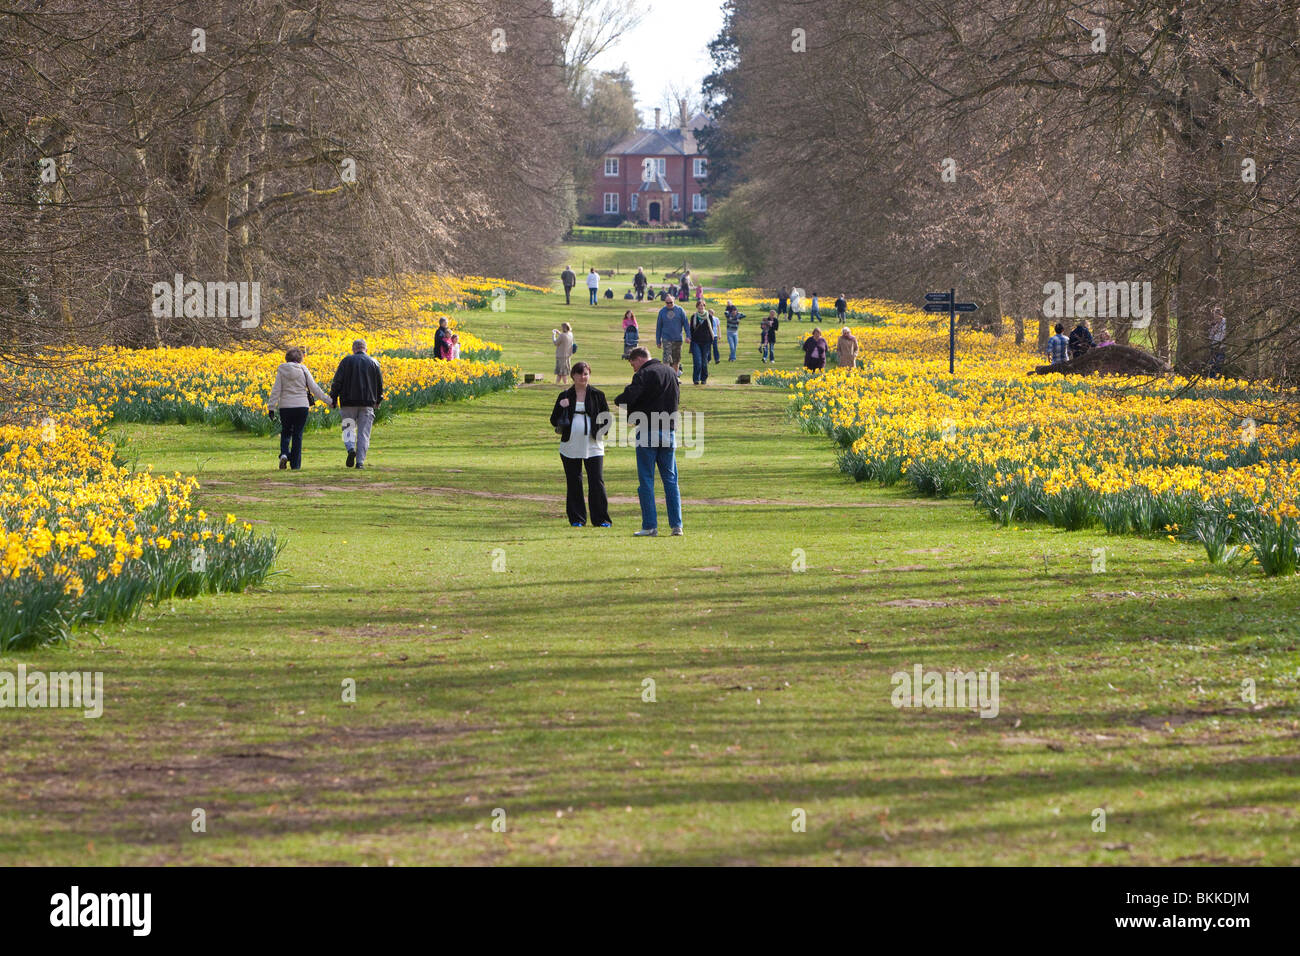 people and families walking in Nowton Park, UK - Stock Image